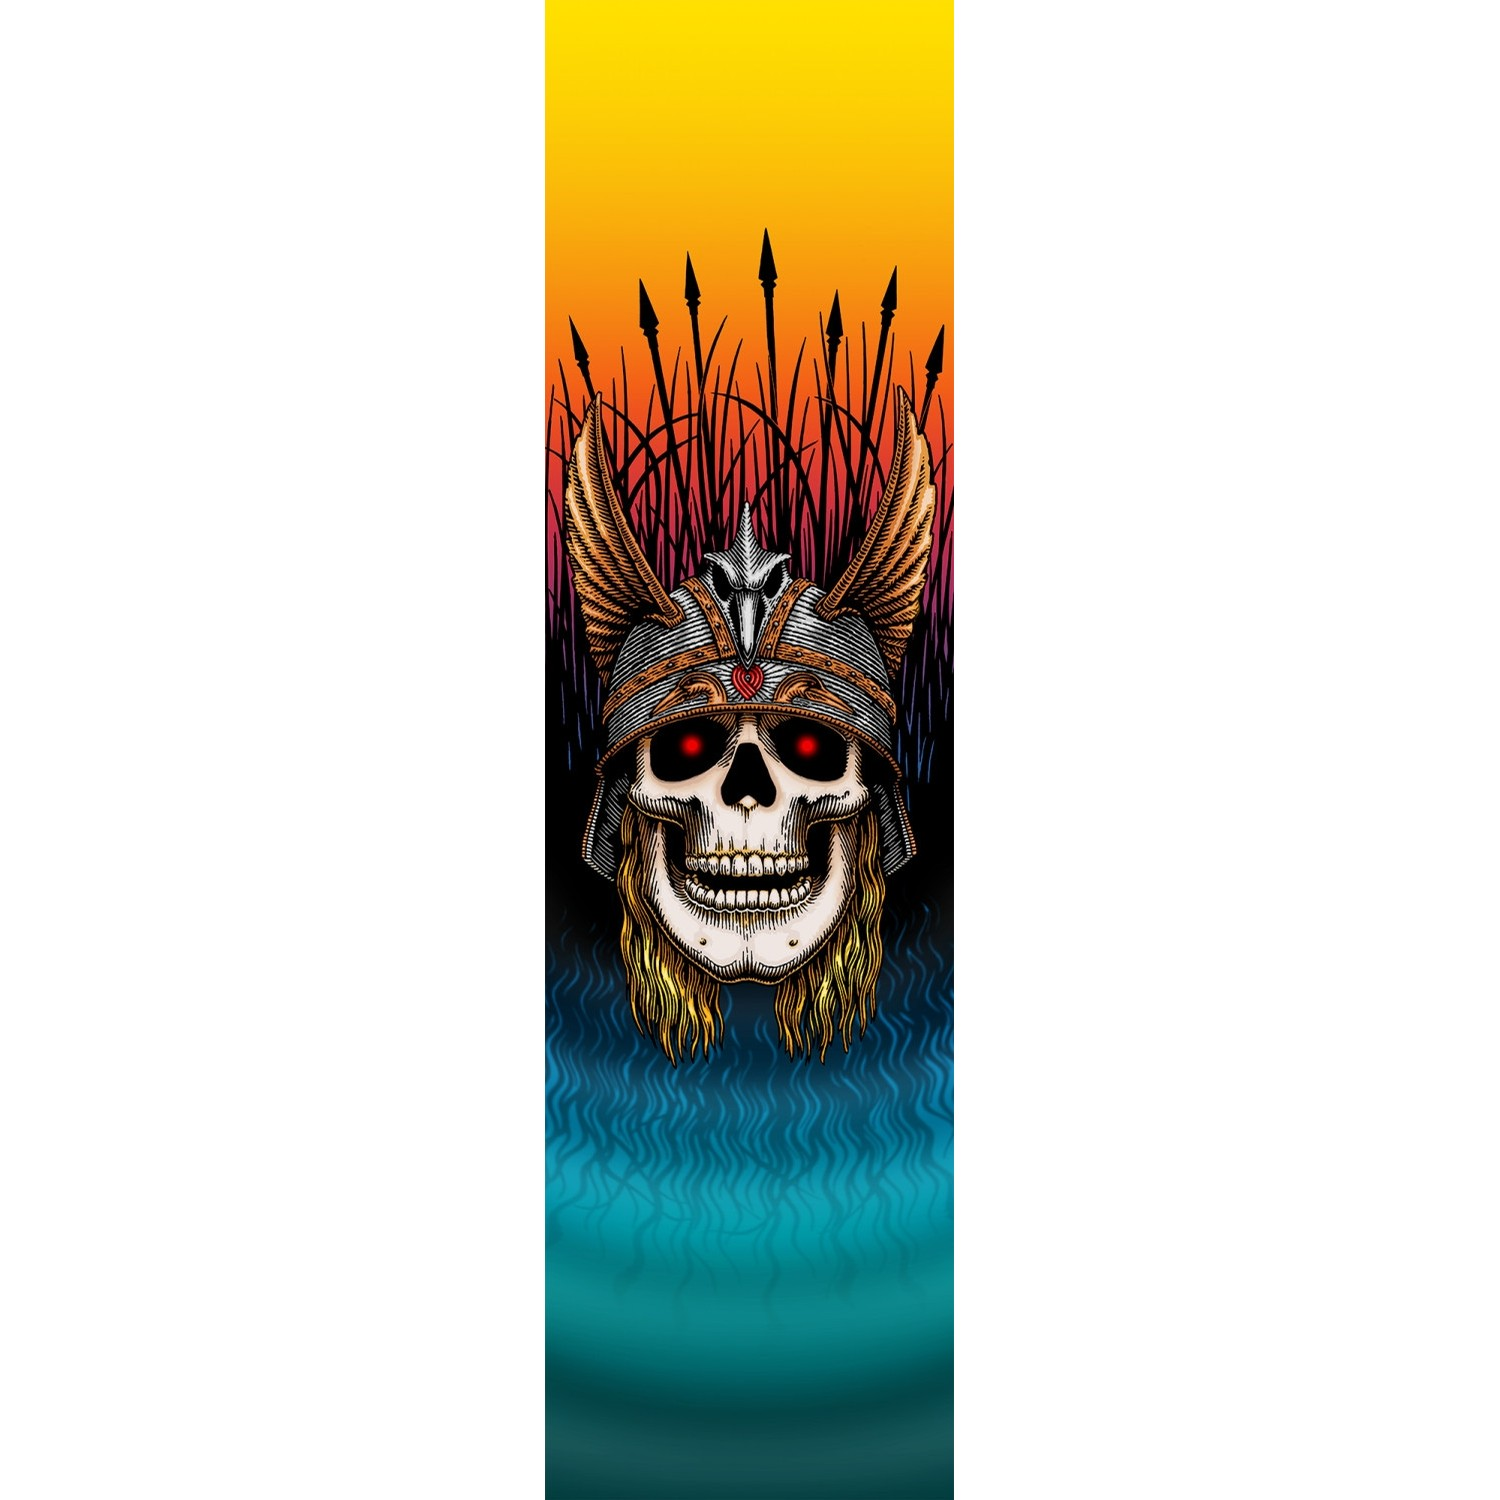 Andy Anderson Griptape